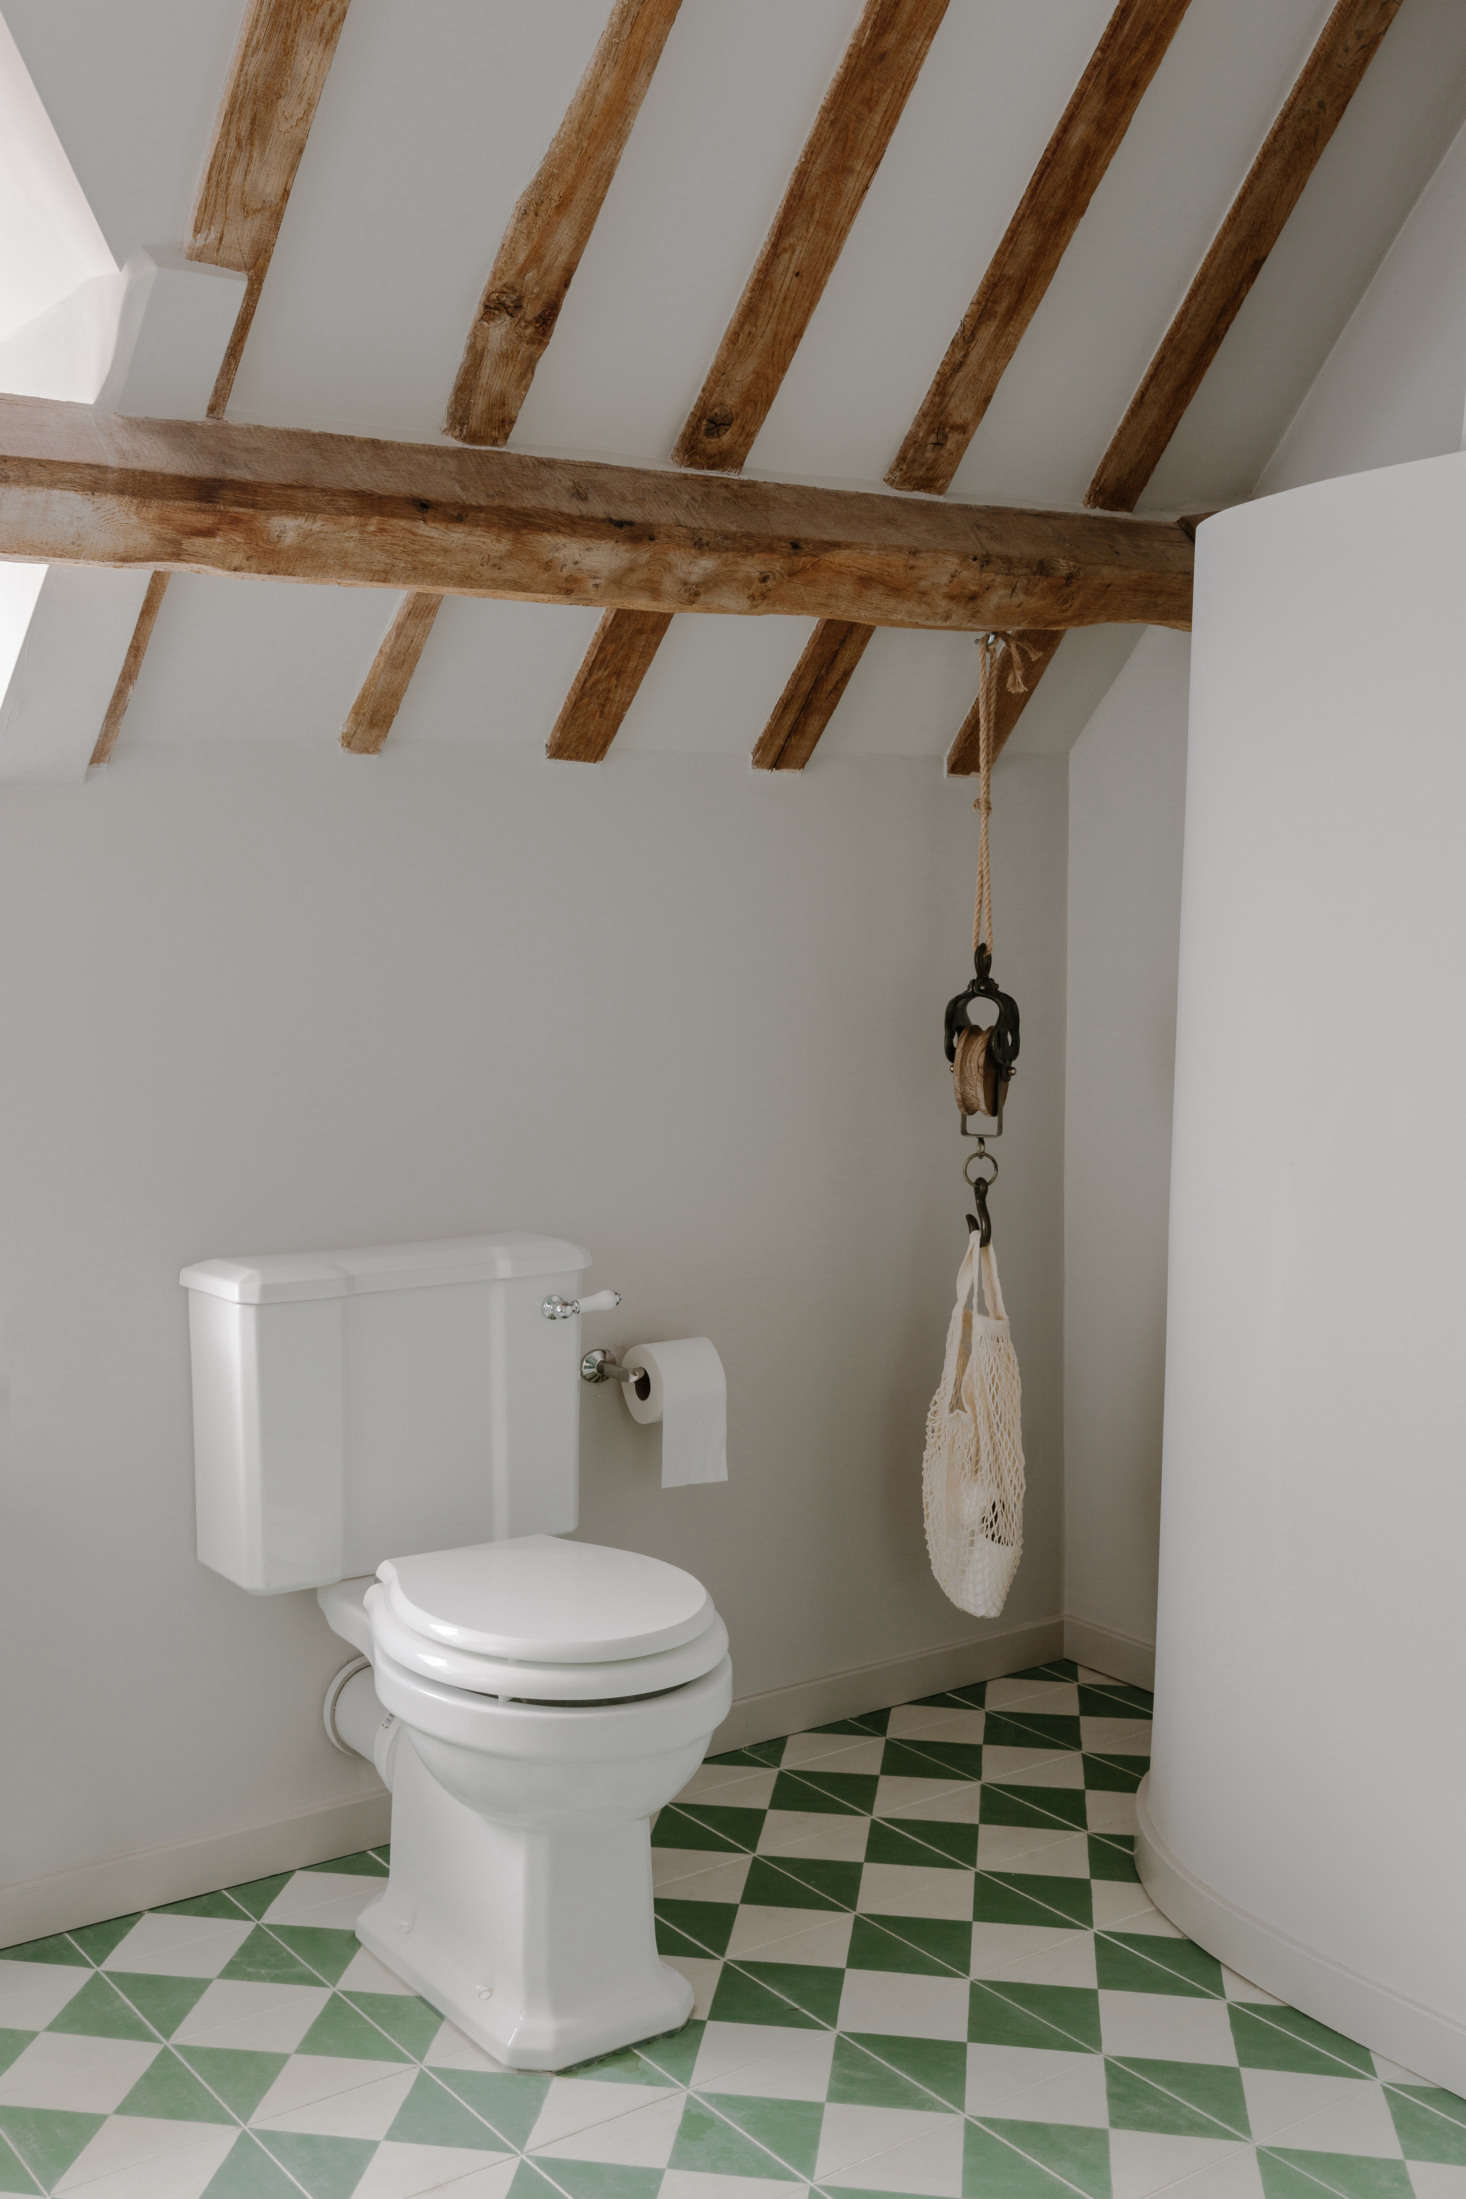 In the WC is a smart way of corralling spare toilet tissue. &#8